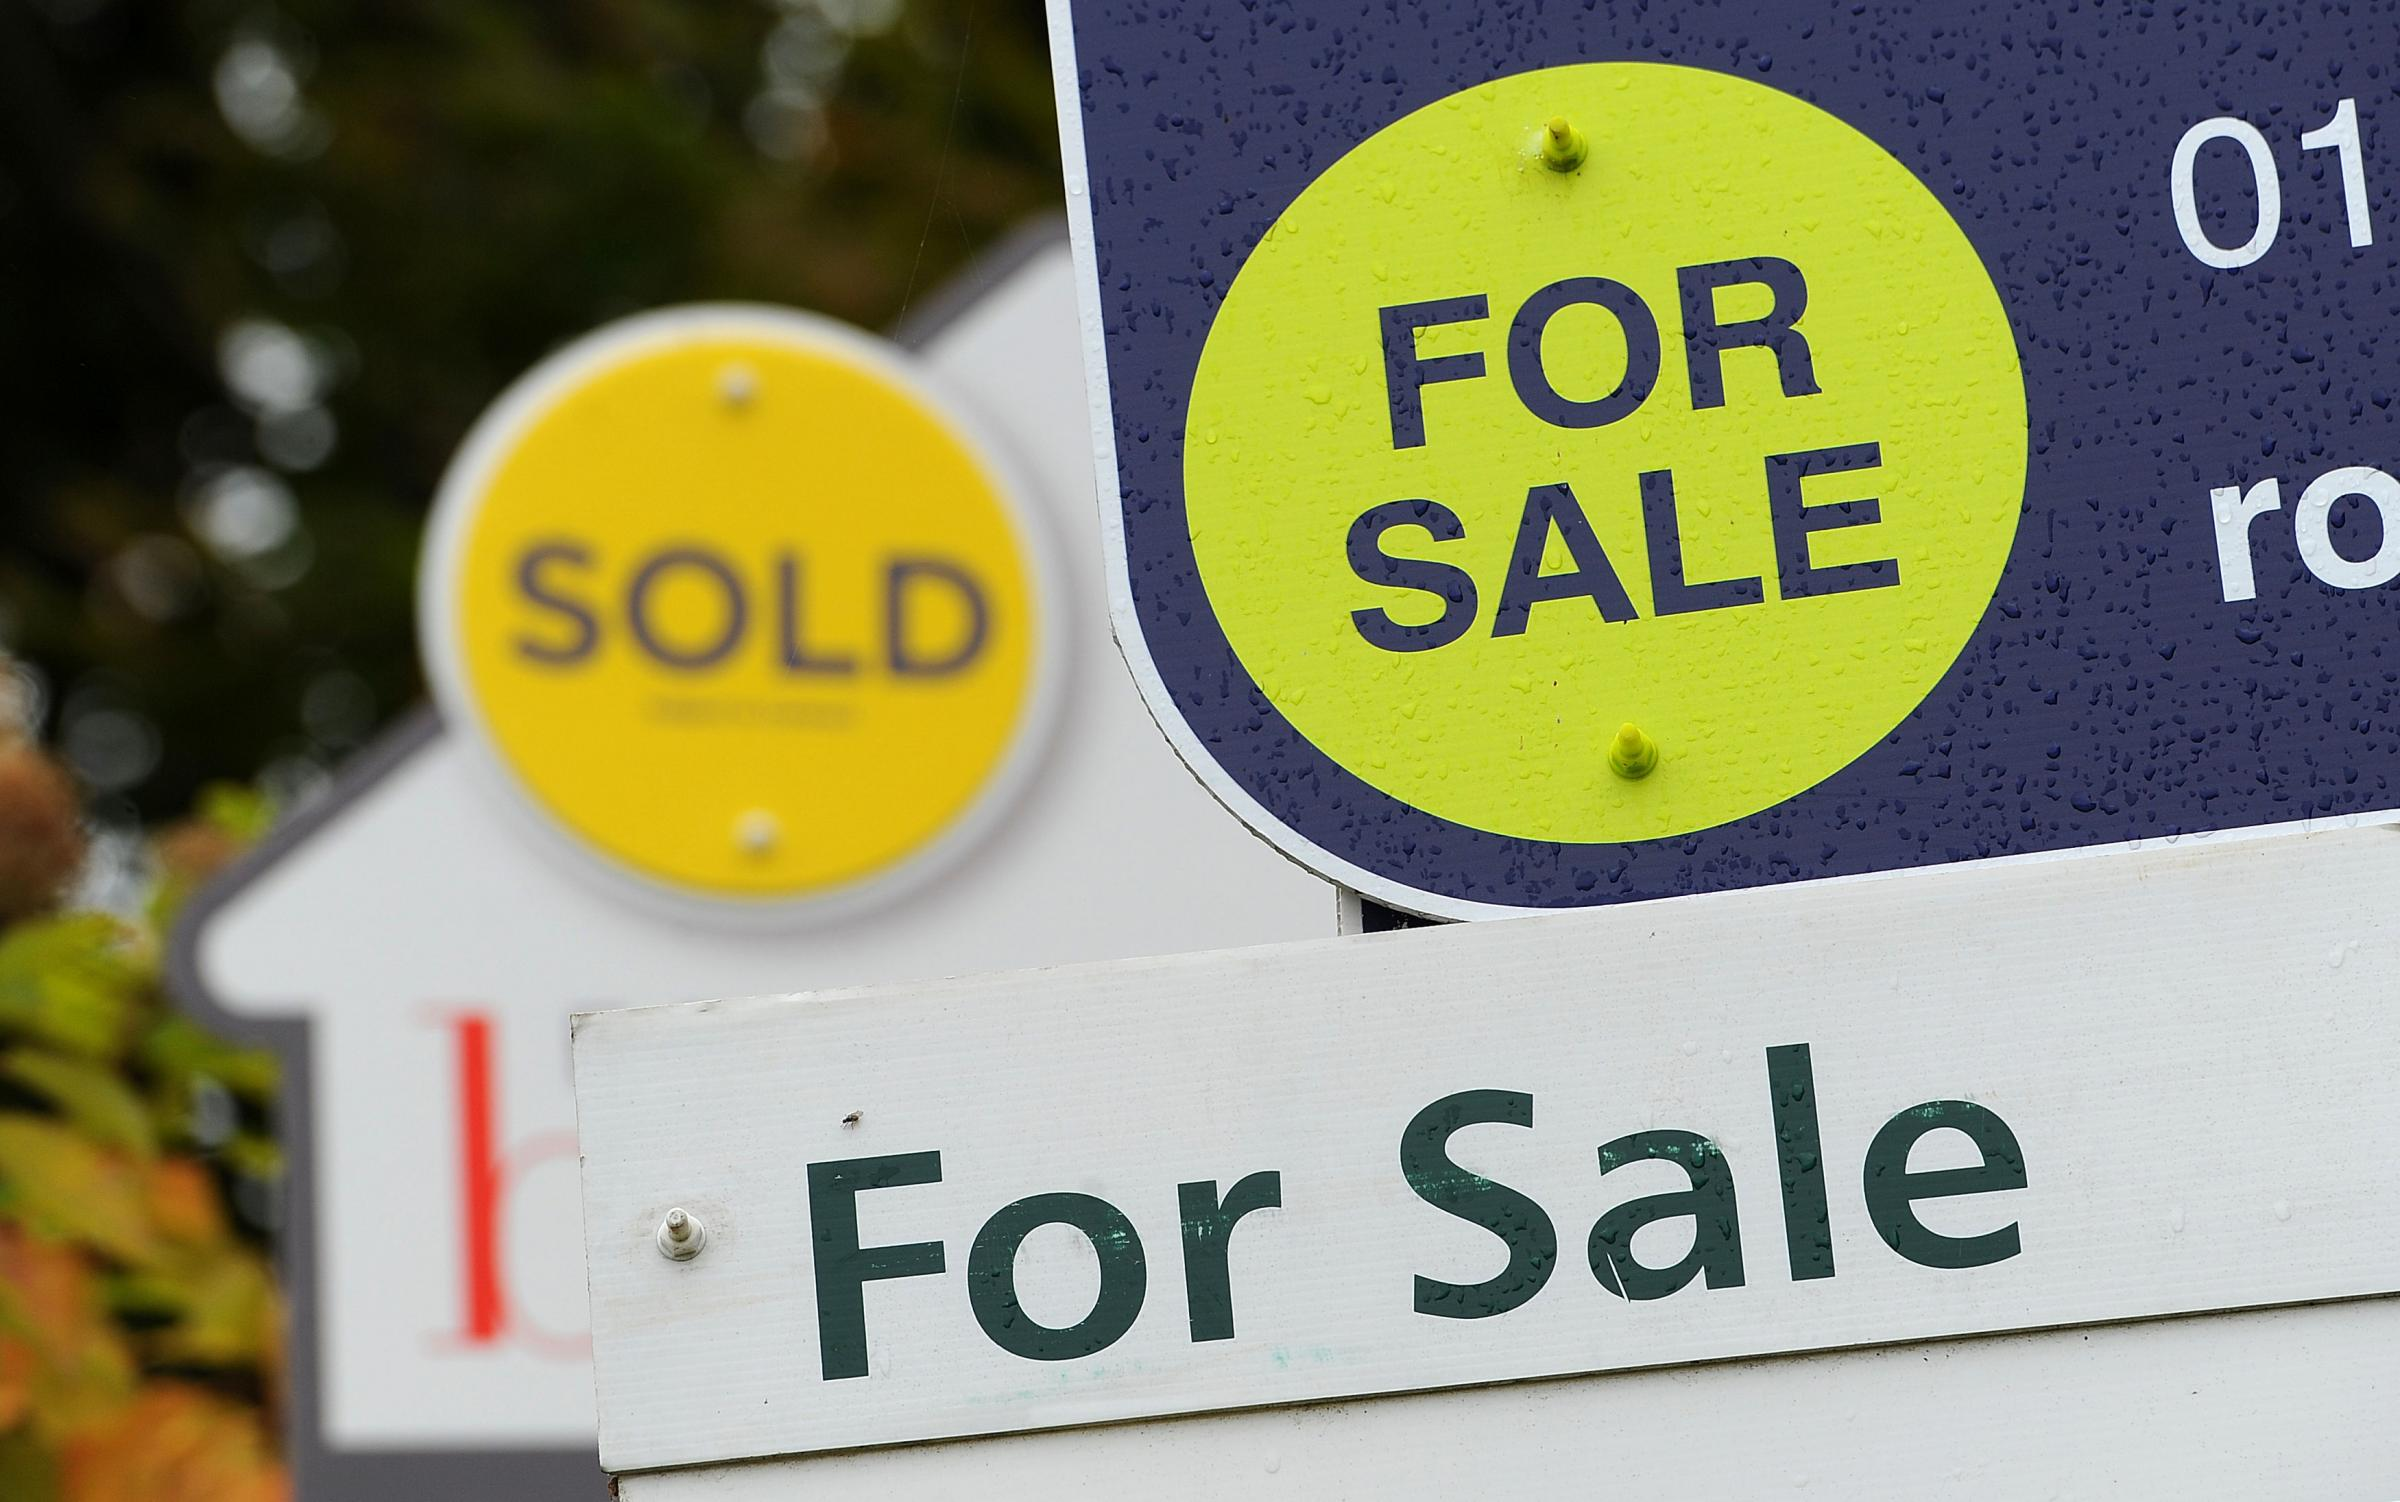 Newport property prices have risen by up to 30 per cent in the last six months